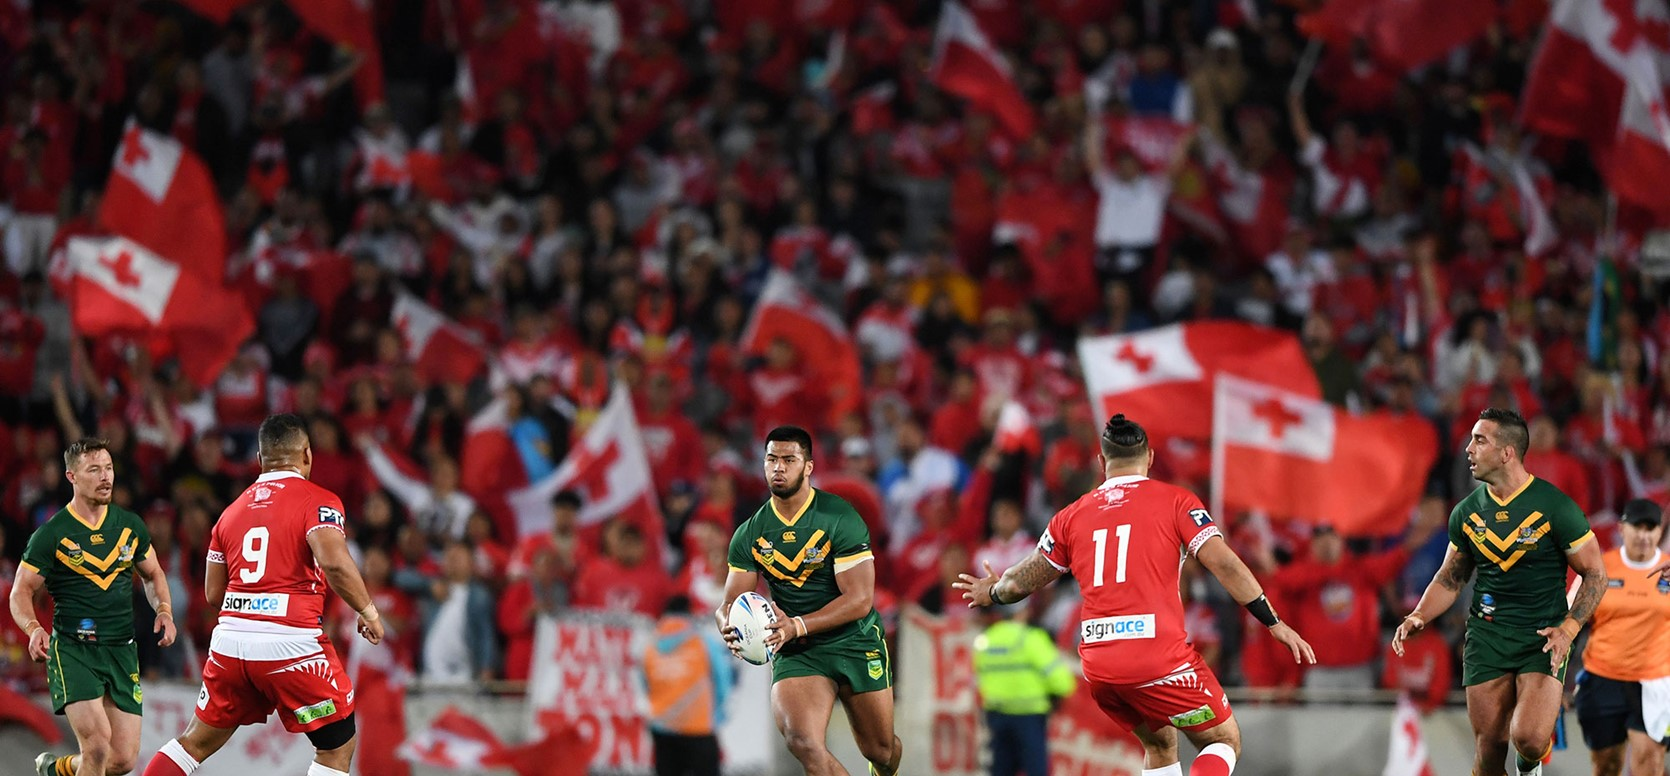 Asia Pacific Rugby League receives application from Tonga Ma'a Tonga Rugby League